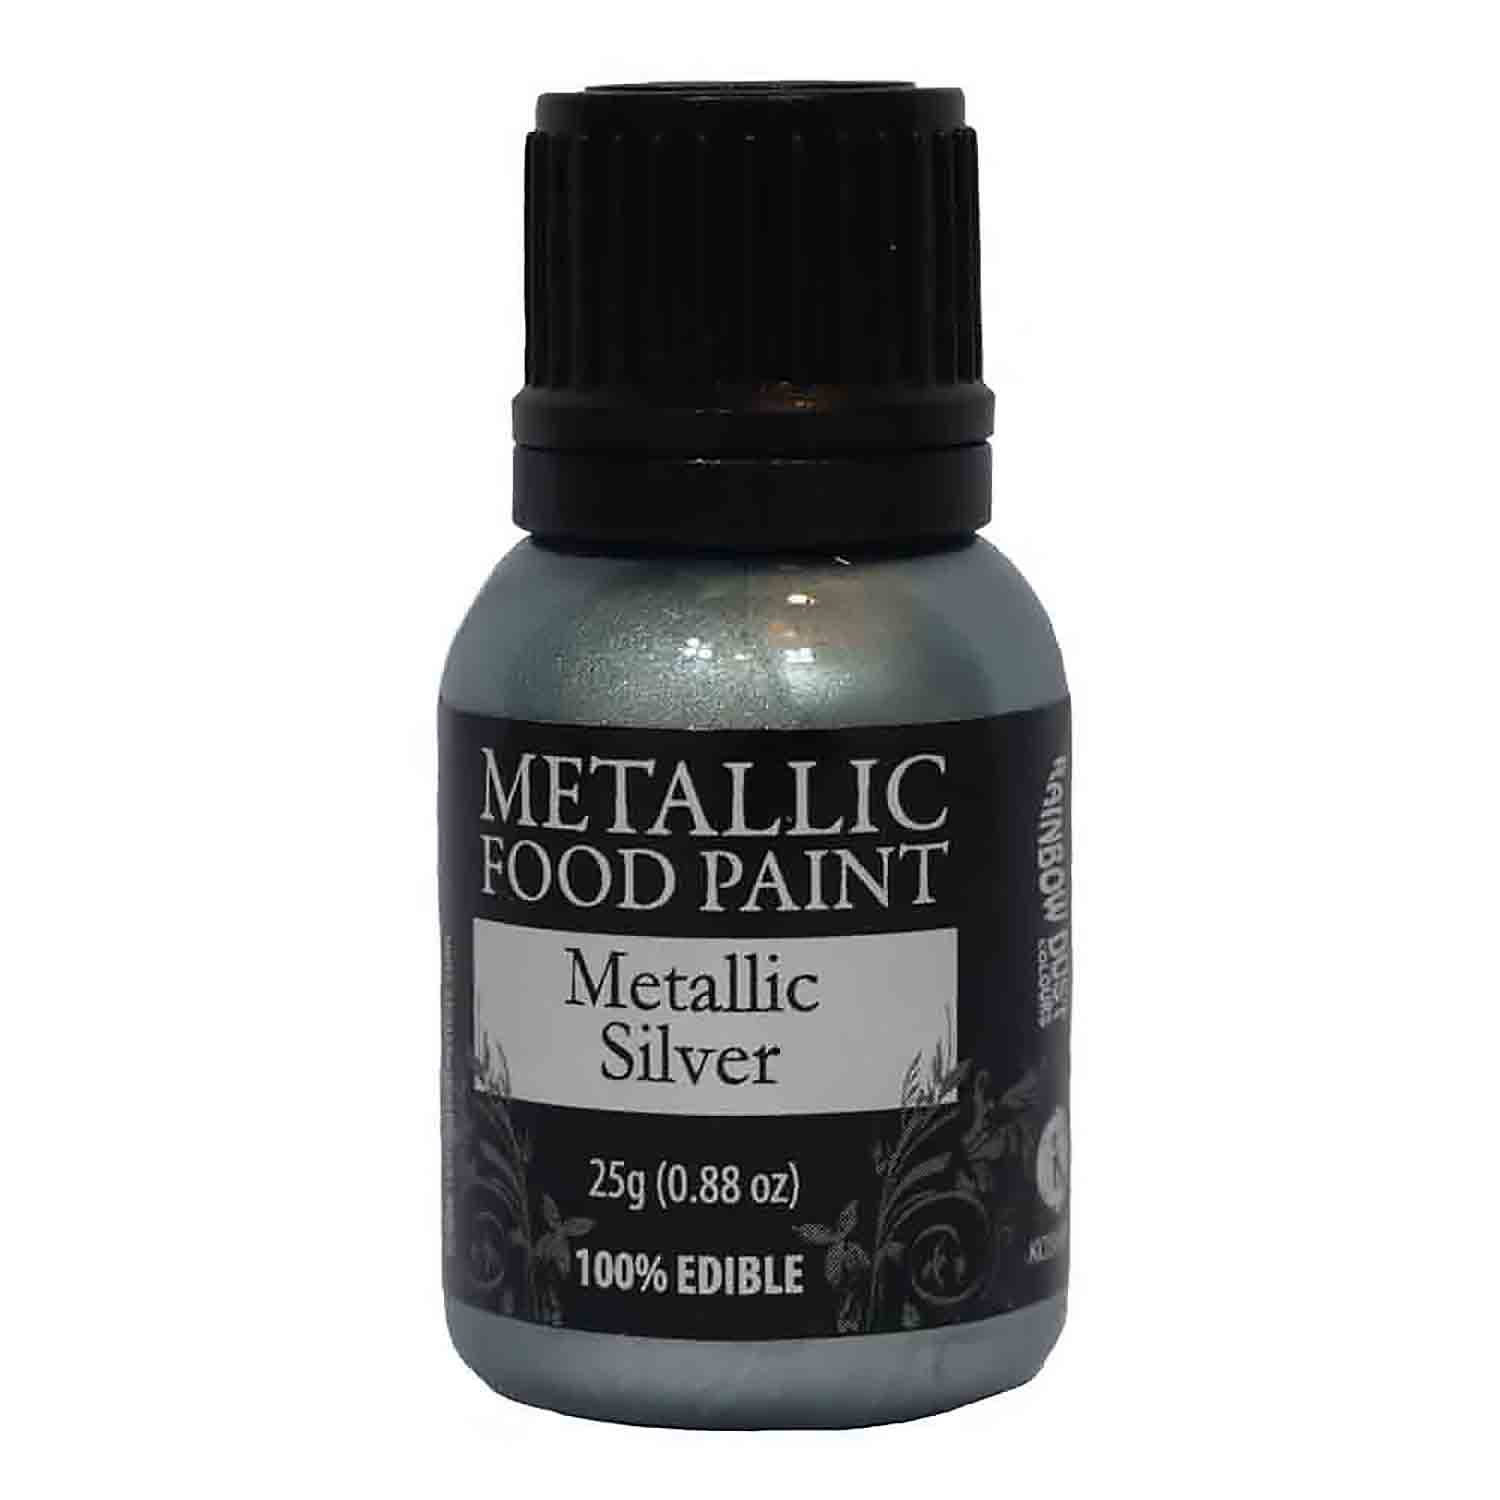 Metallic Silver Metallic Food Paint